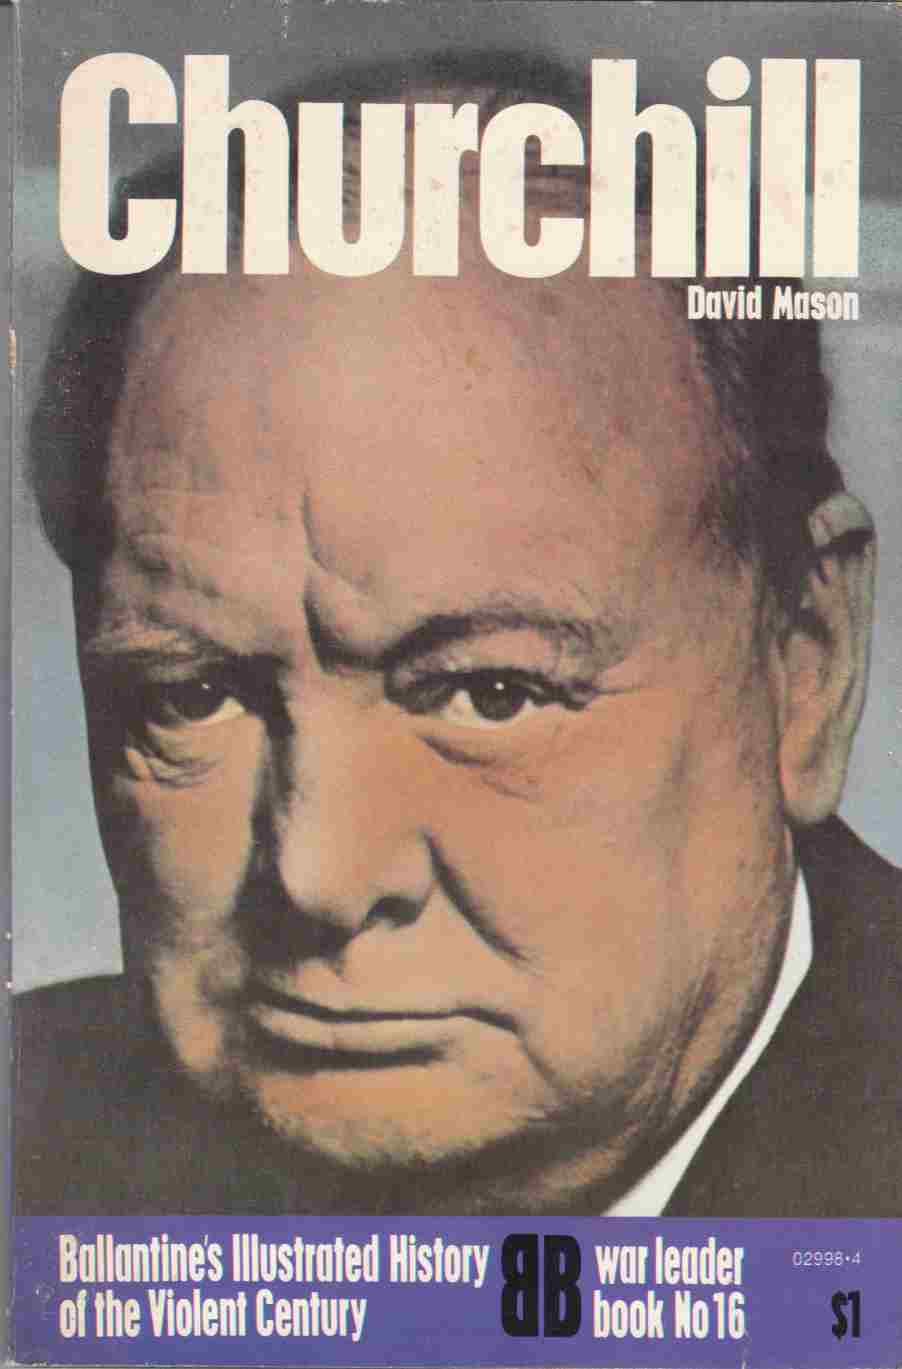 Image for Churchill:  War Leader Book No. 16